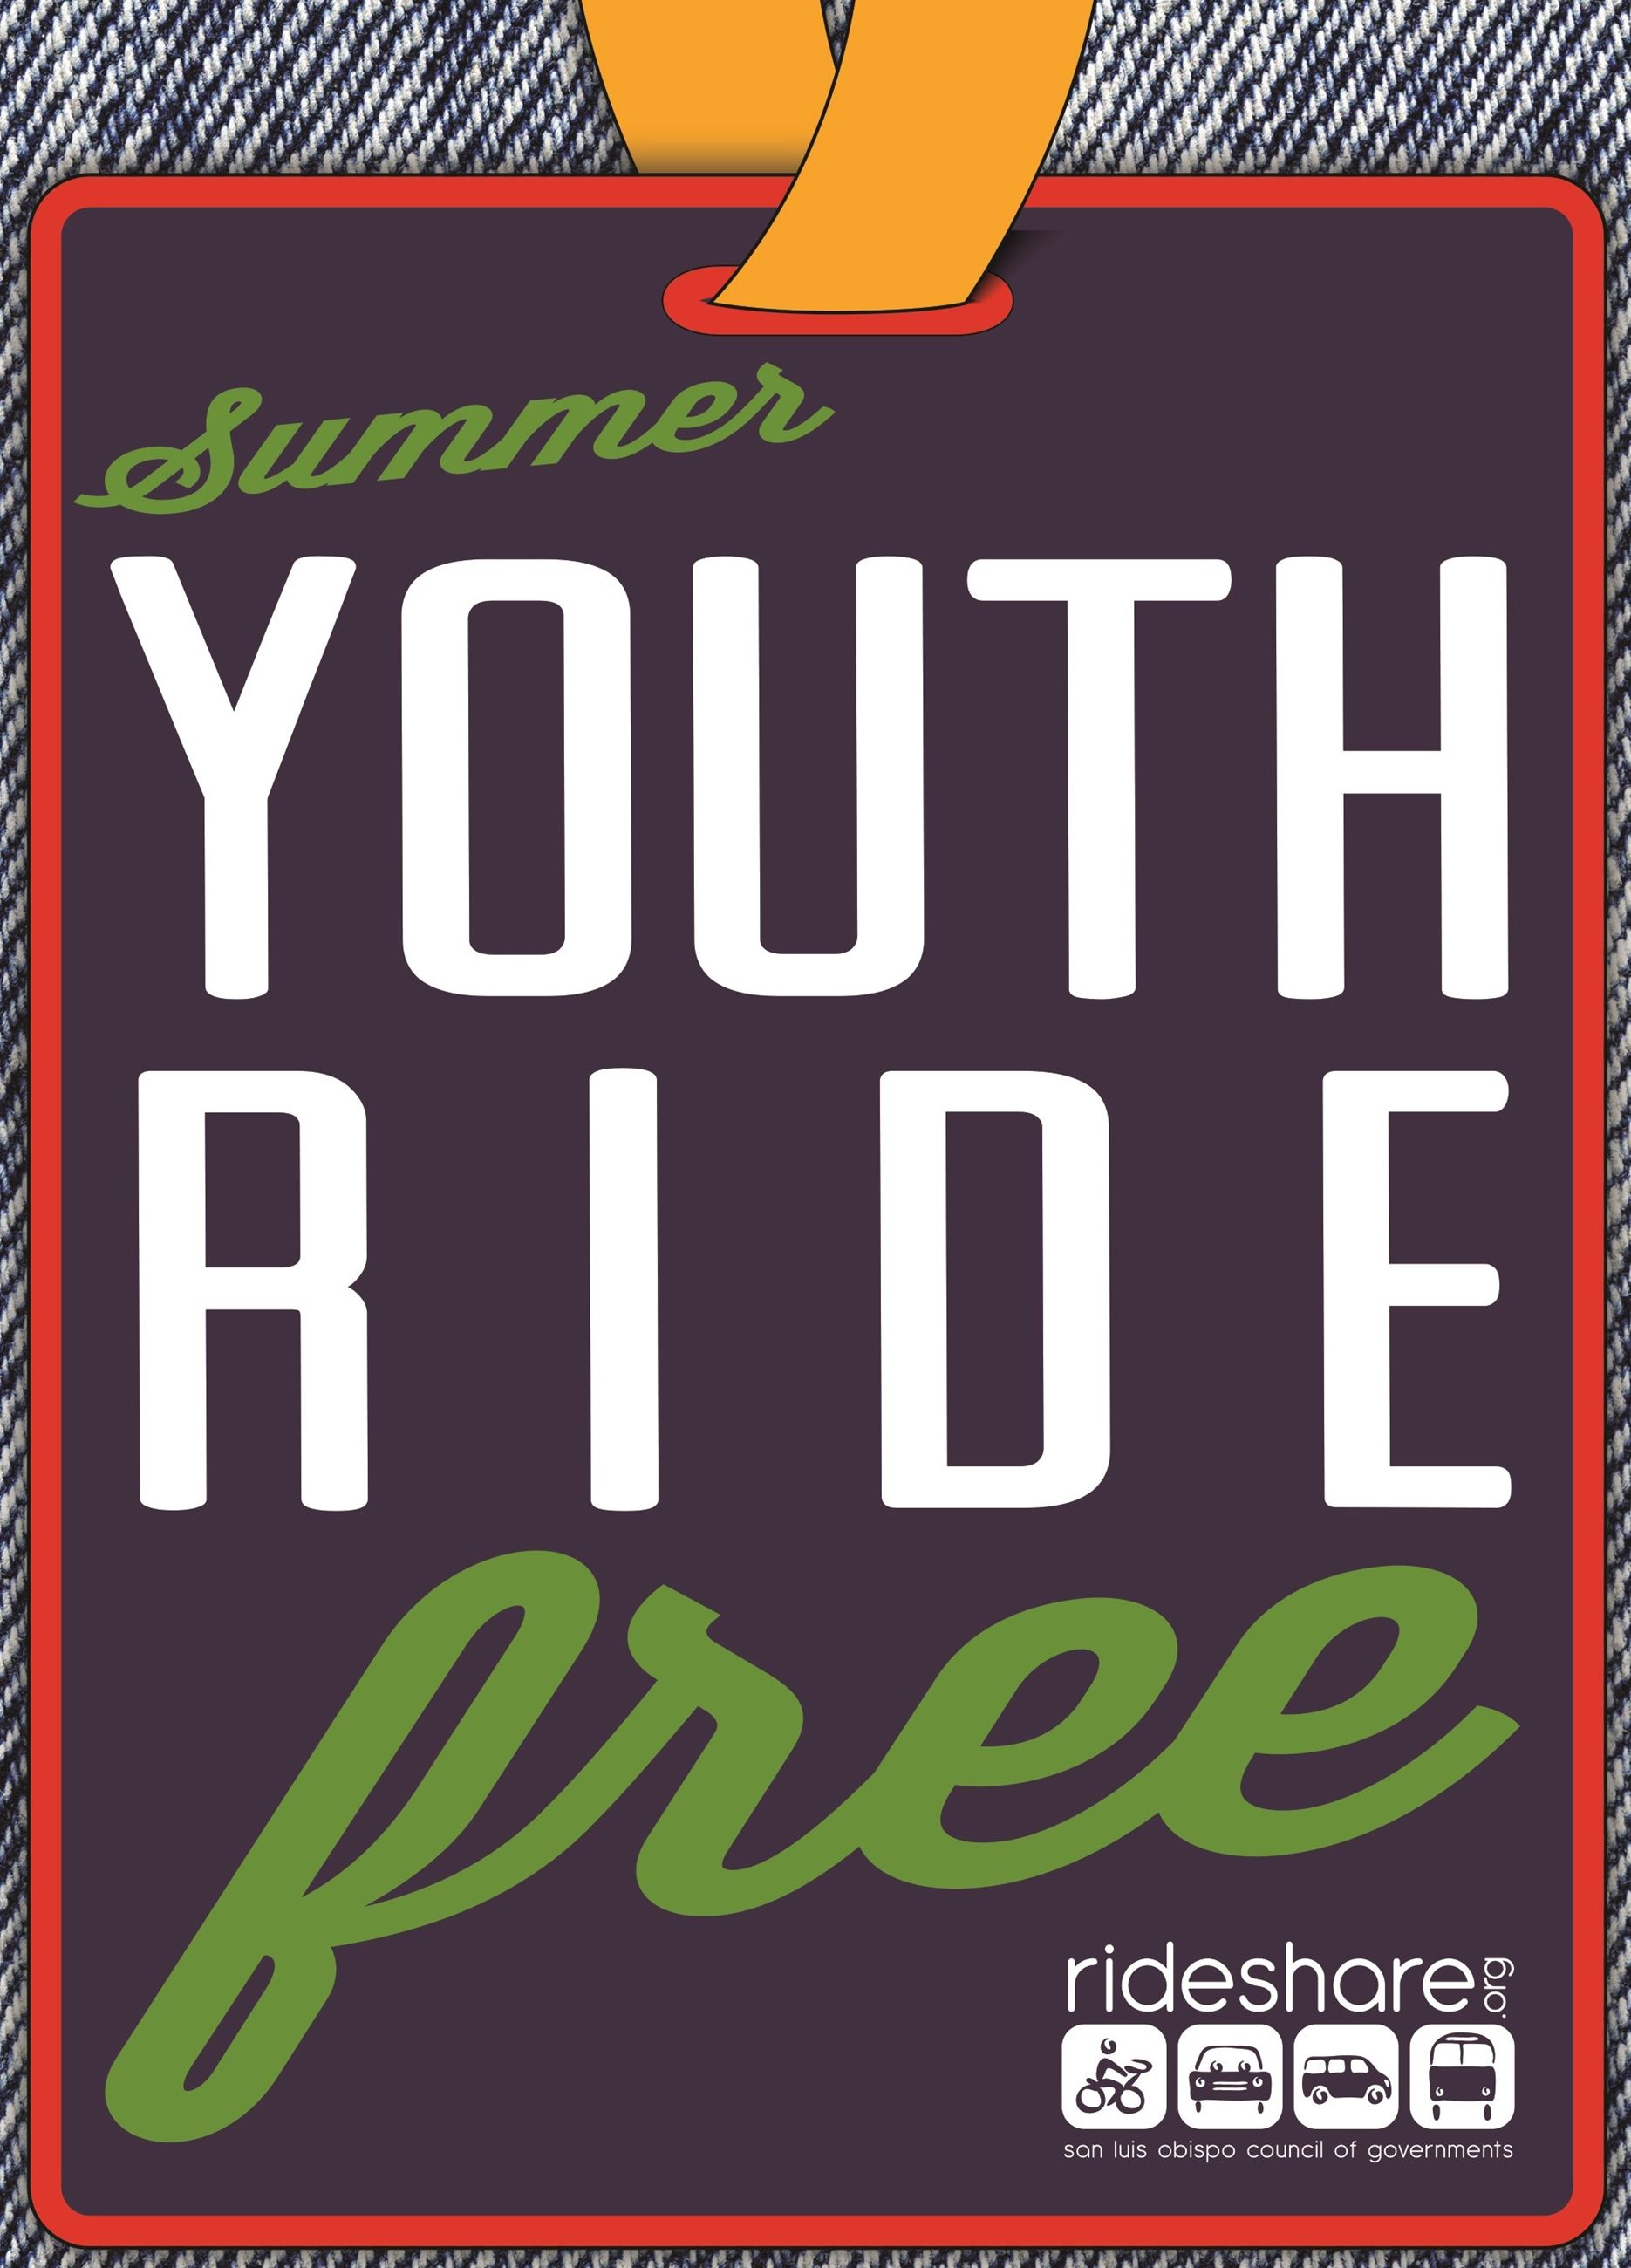 Youth Ride Free image 2017